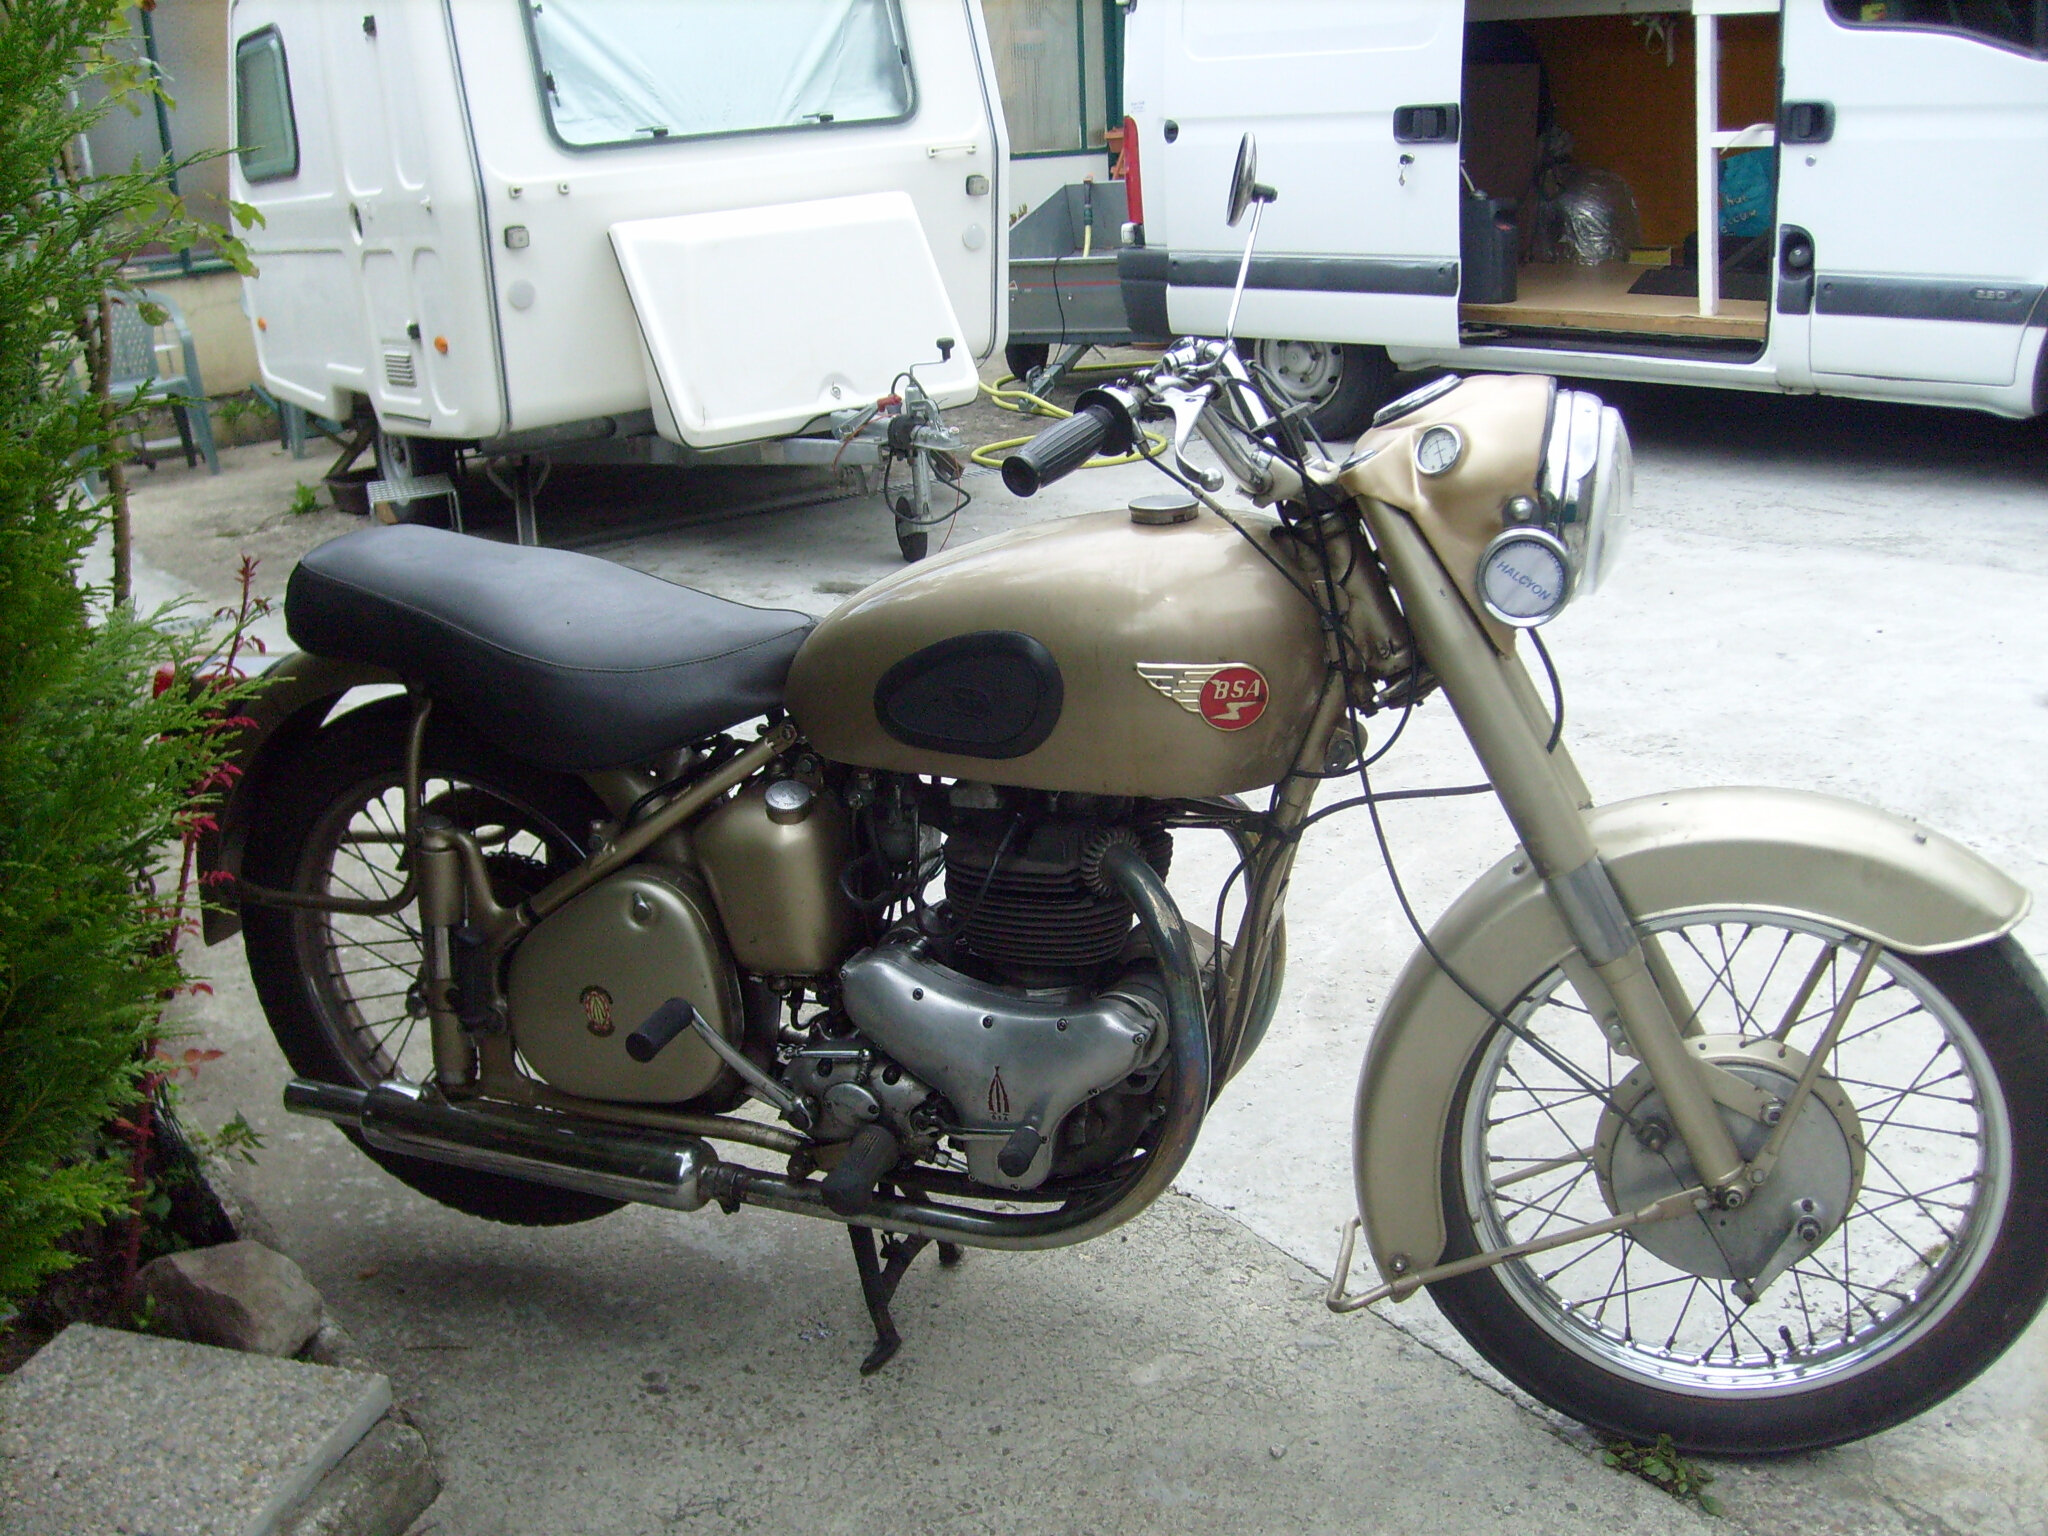 restauration d 39 une bsa a10 de 1953 vieux pistons du cotentin. Black Bedroom Furniture Sets. Home Design Ideas